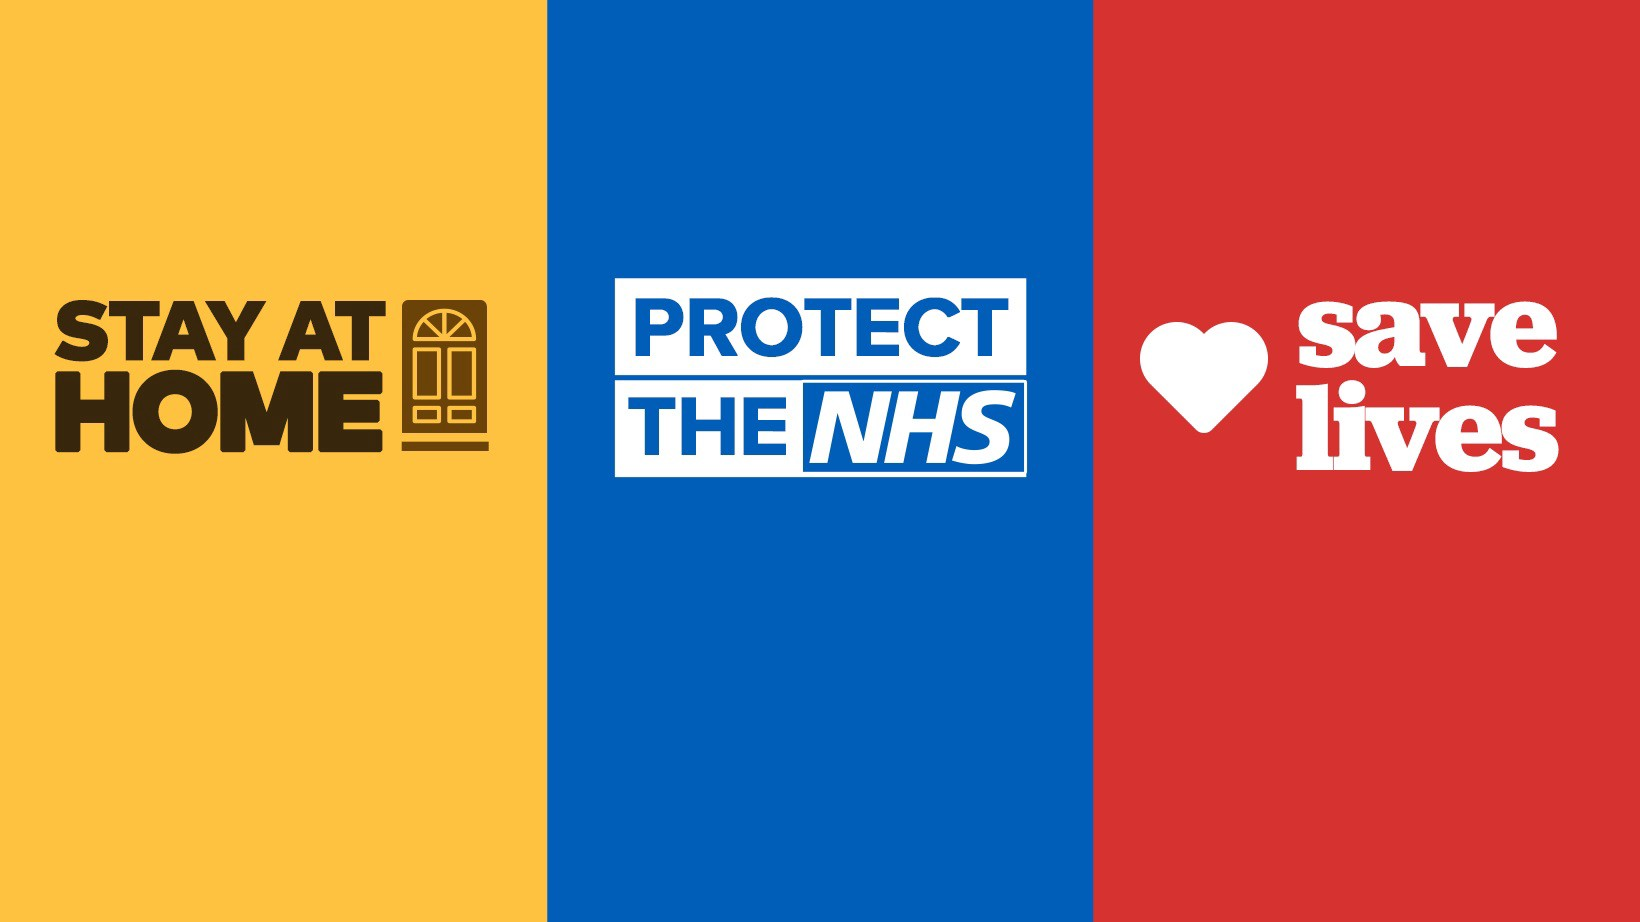 UK government's campaign to stay at home, protect the NHS and save lives